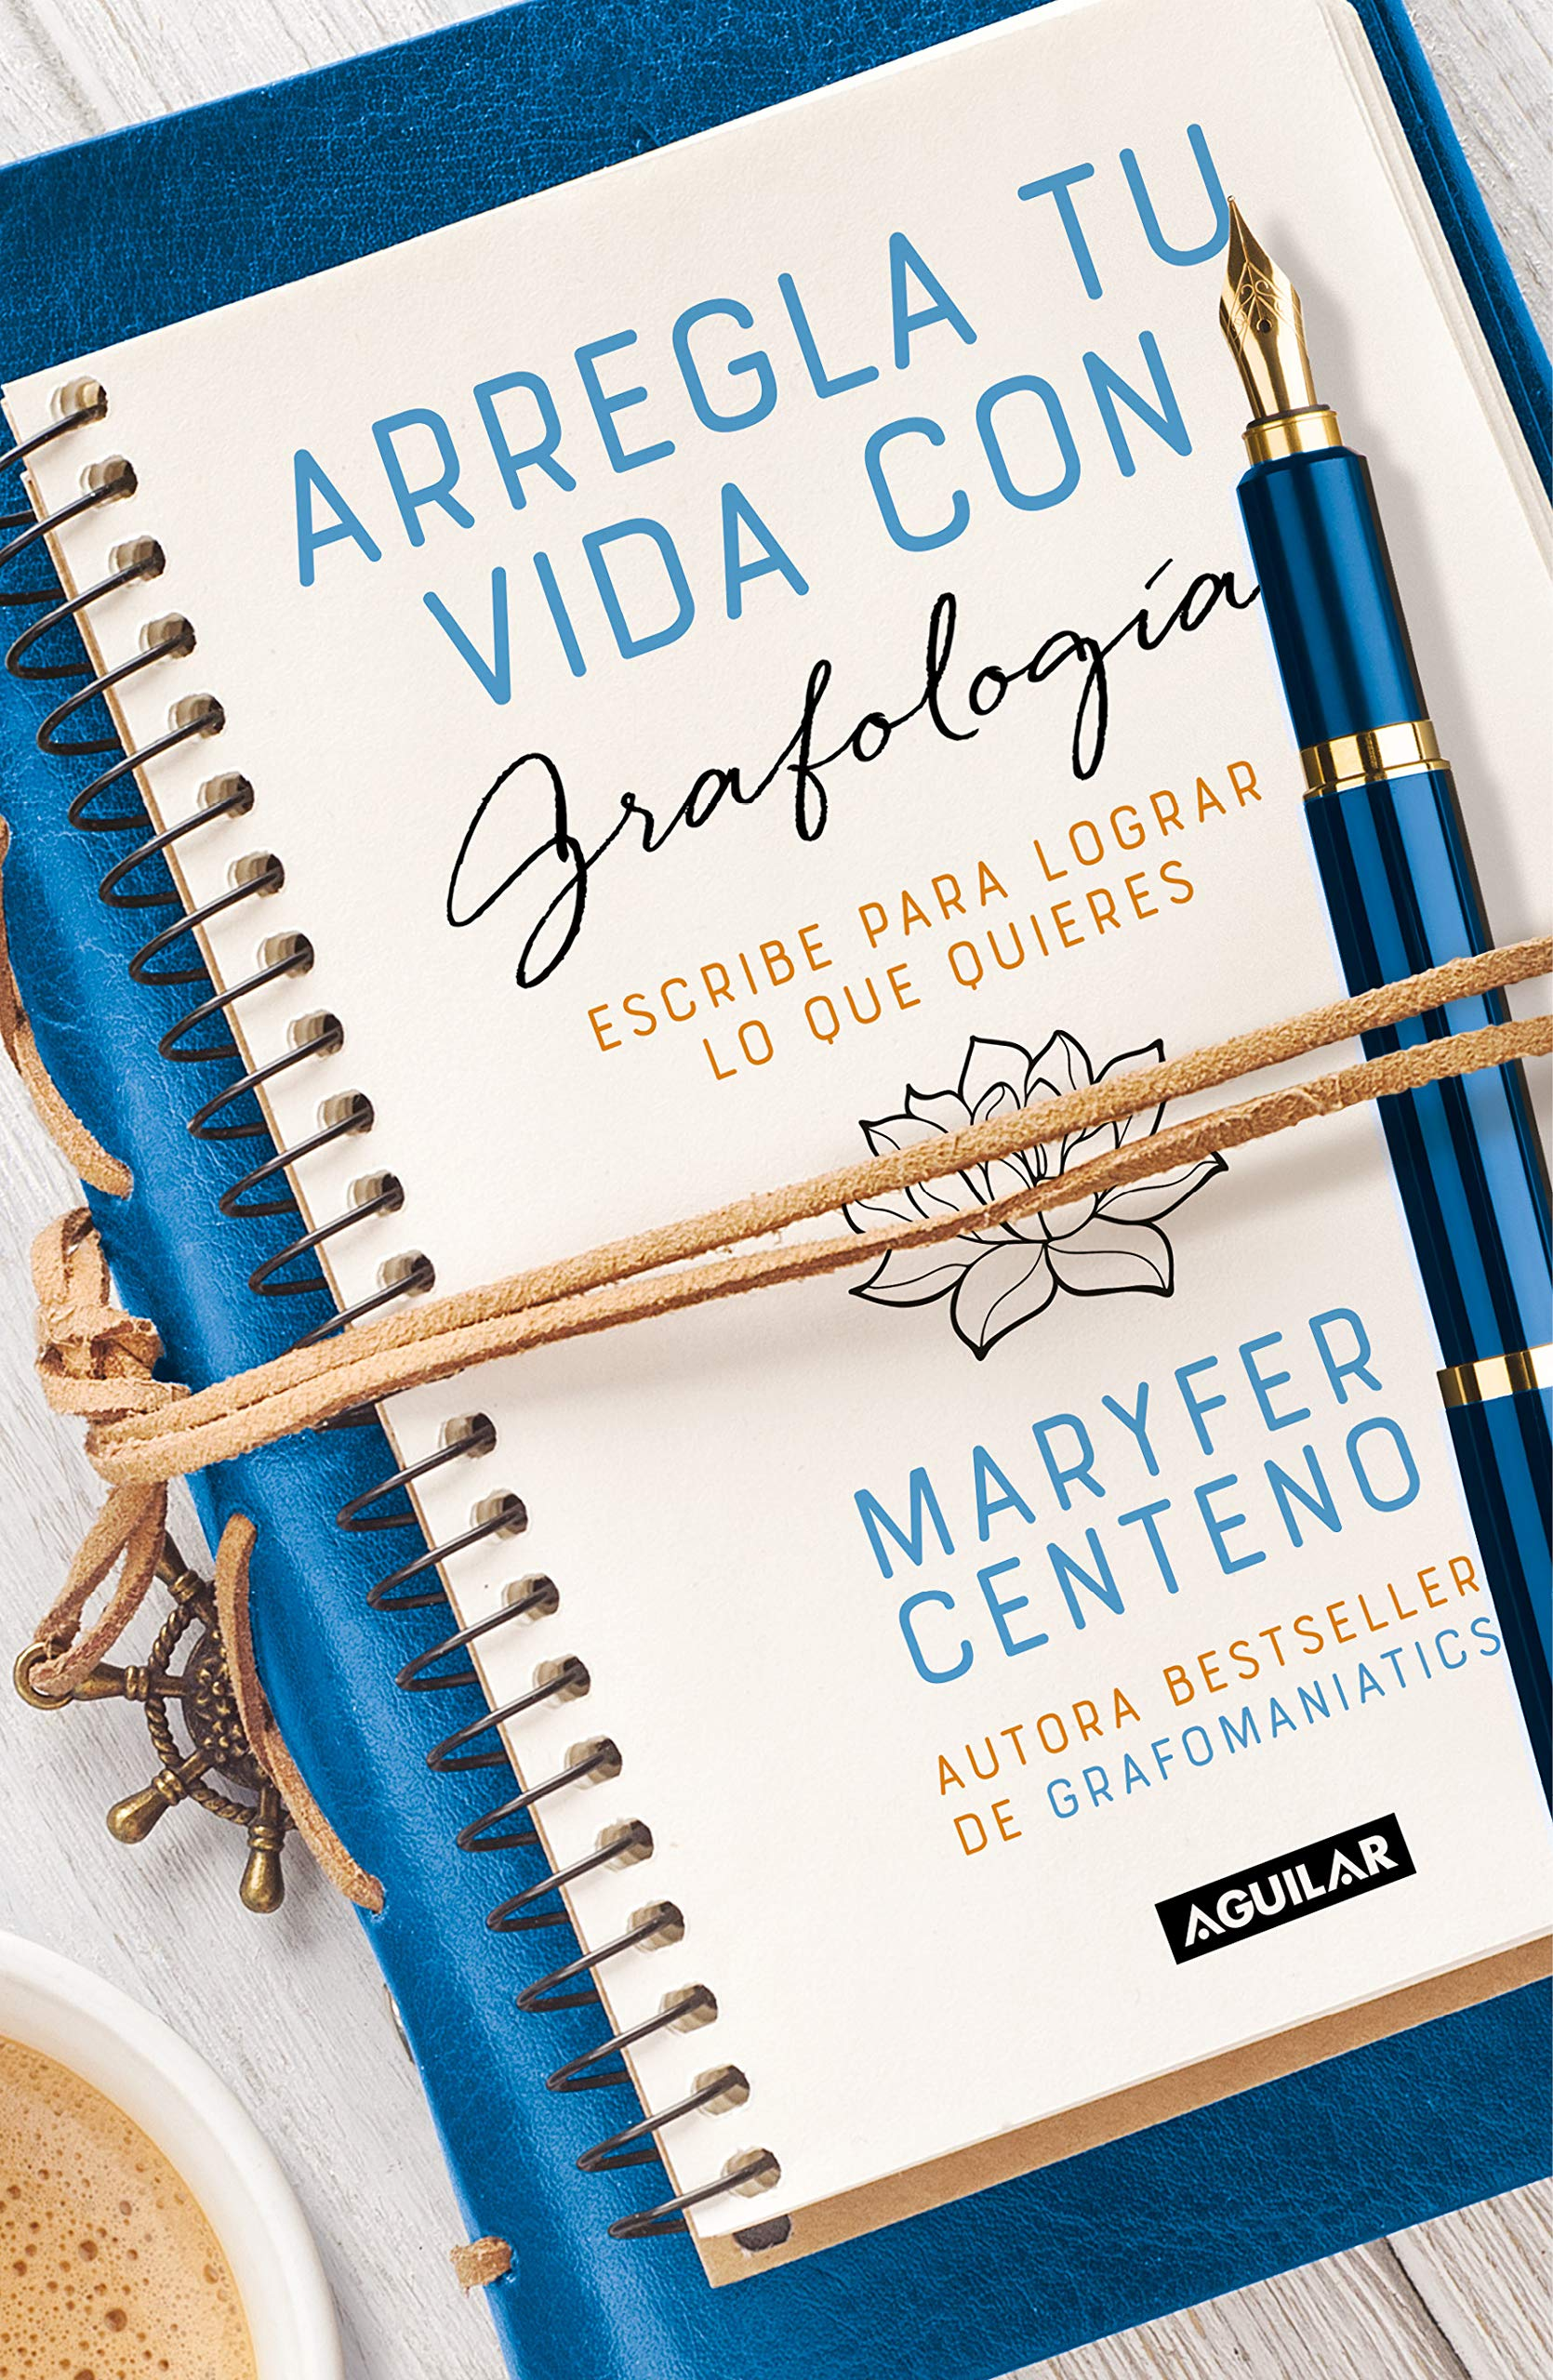 Arregla tu vida con grafología / Get Your Life Back Together with Graphology (Spanish Edition)